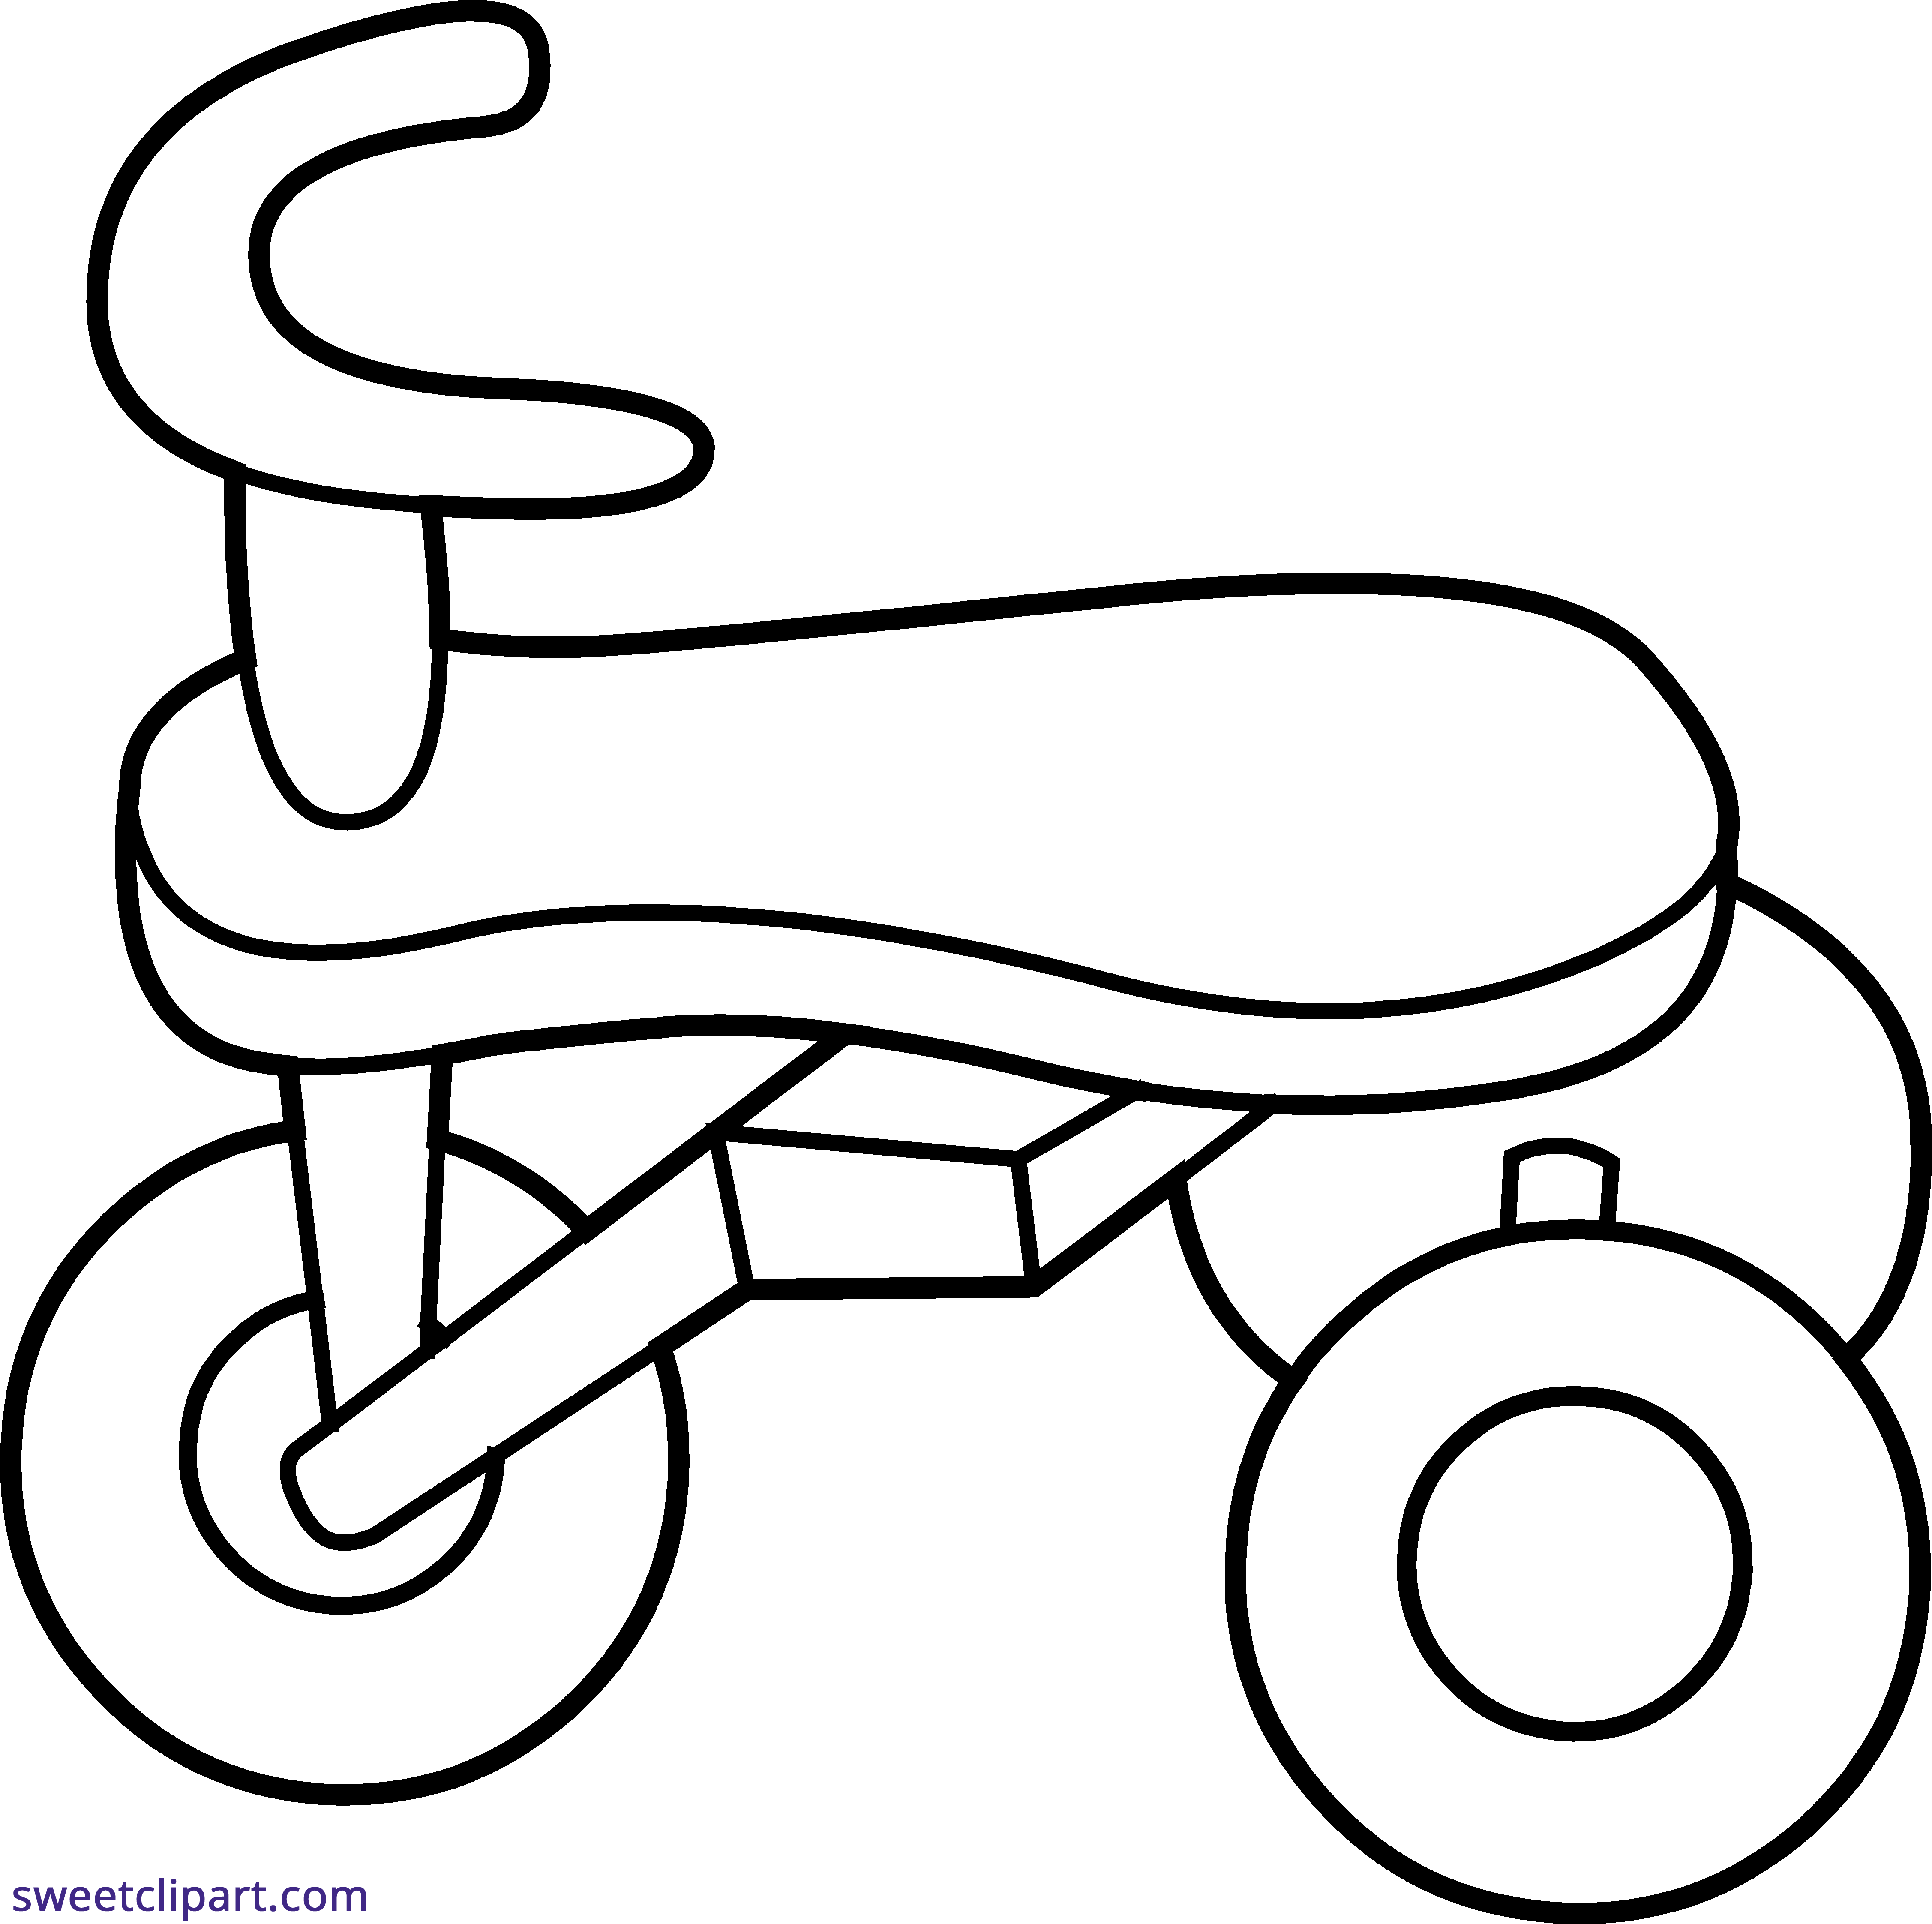 Tricycle clipart. Line art sweet clip